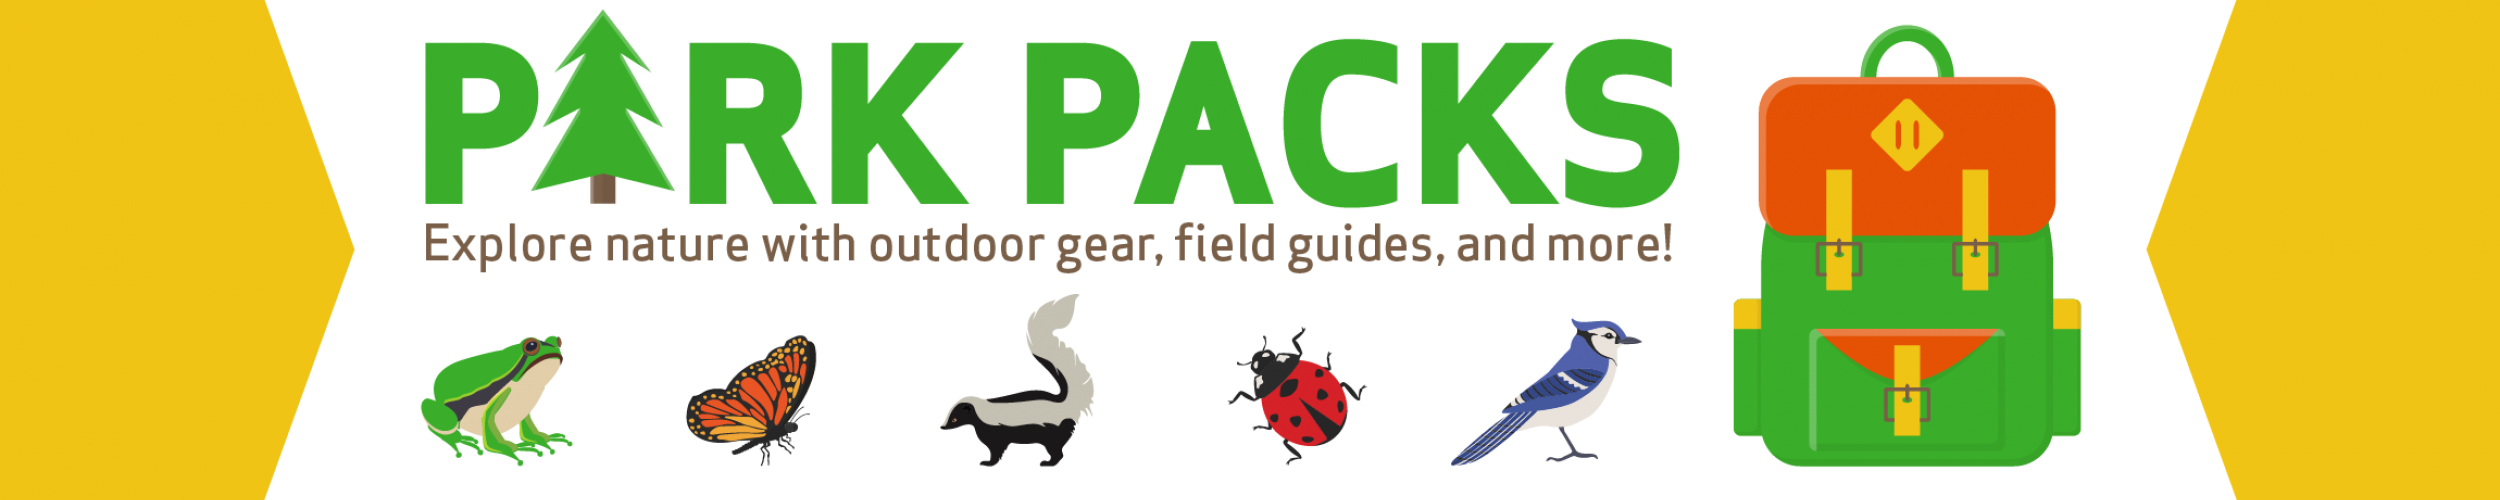 Park Packs: Explore nature with outdoor gear, field guides, and more!